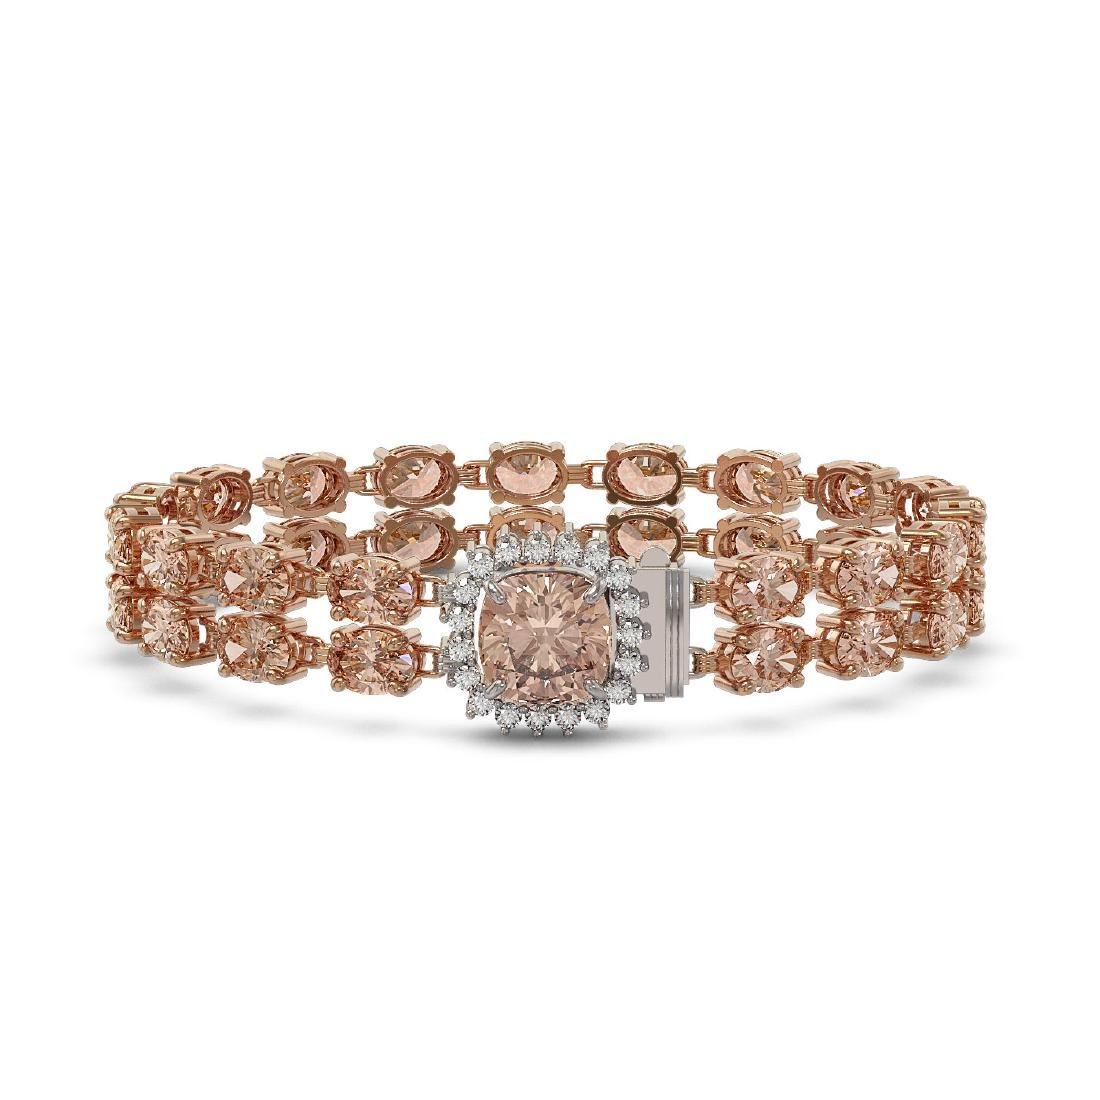 29.63 ctw Morganite & Diamond Bracelet 14K Rose Gold -